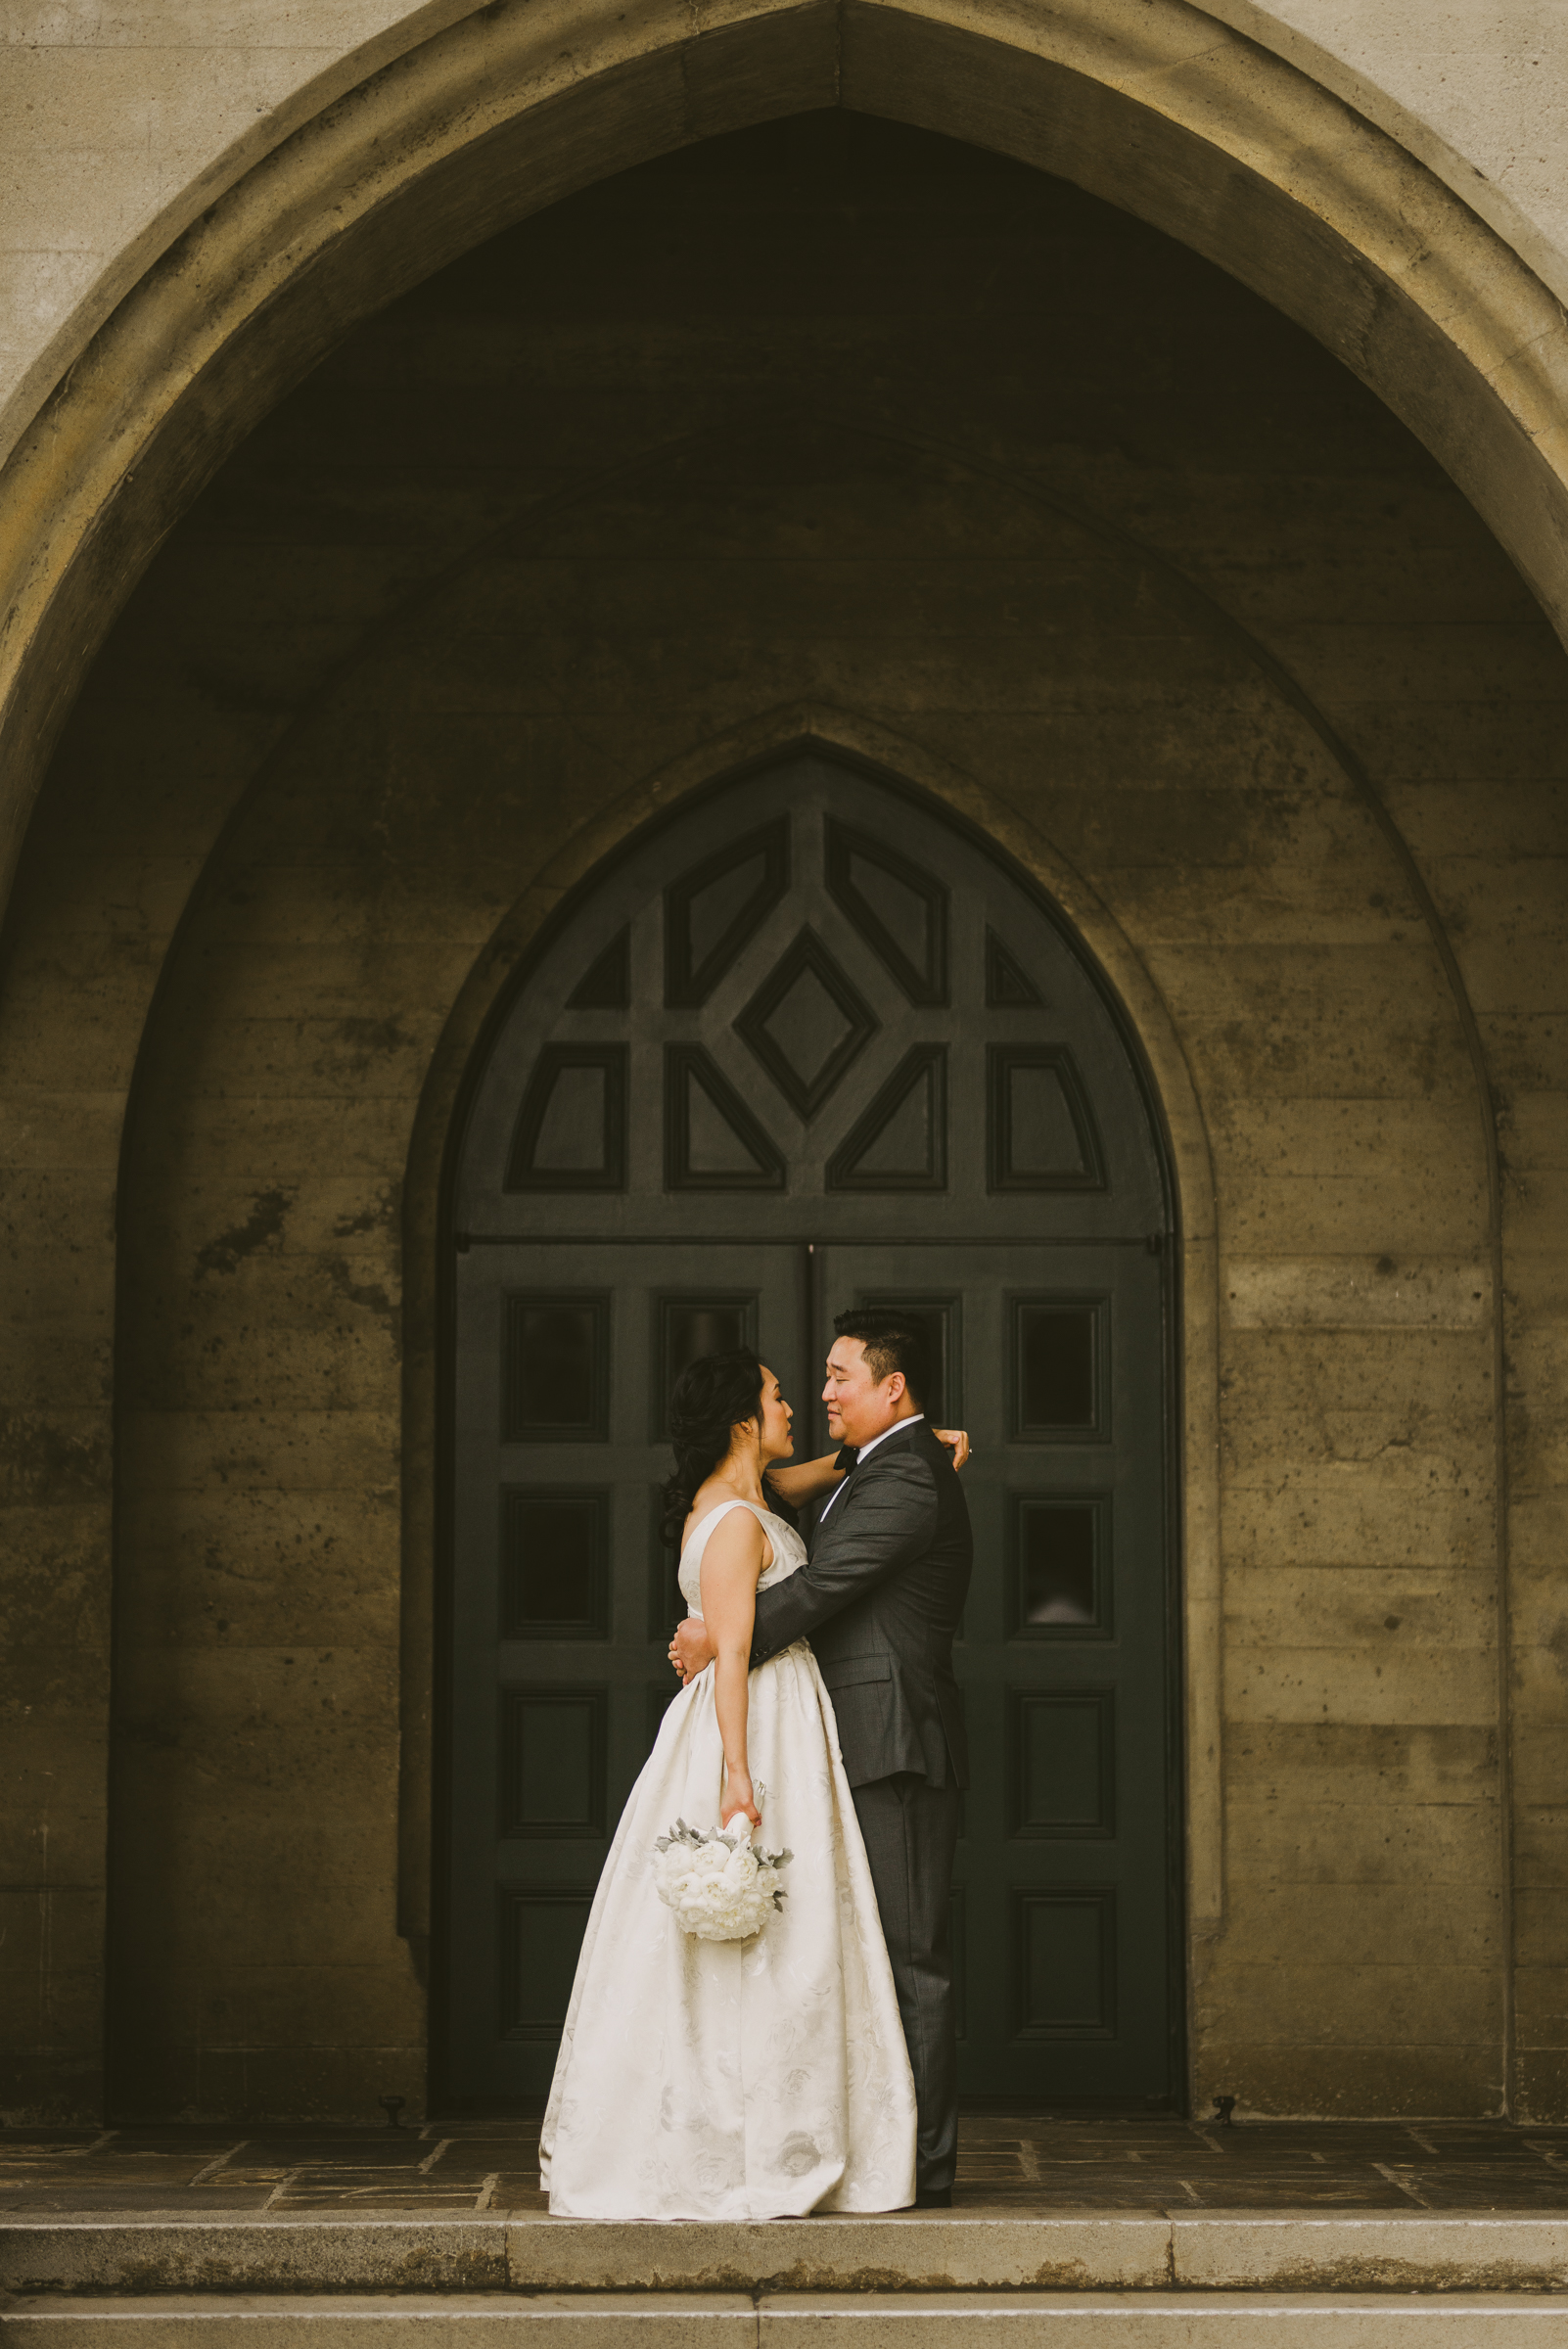 ©Isaiah + Taylor Photography - David + Grace - Wedding - 20170115 03729.jpg